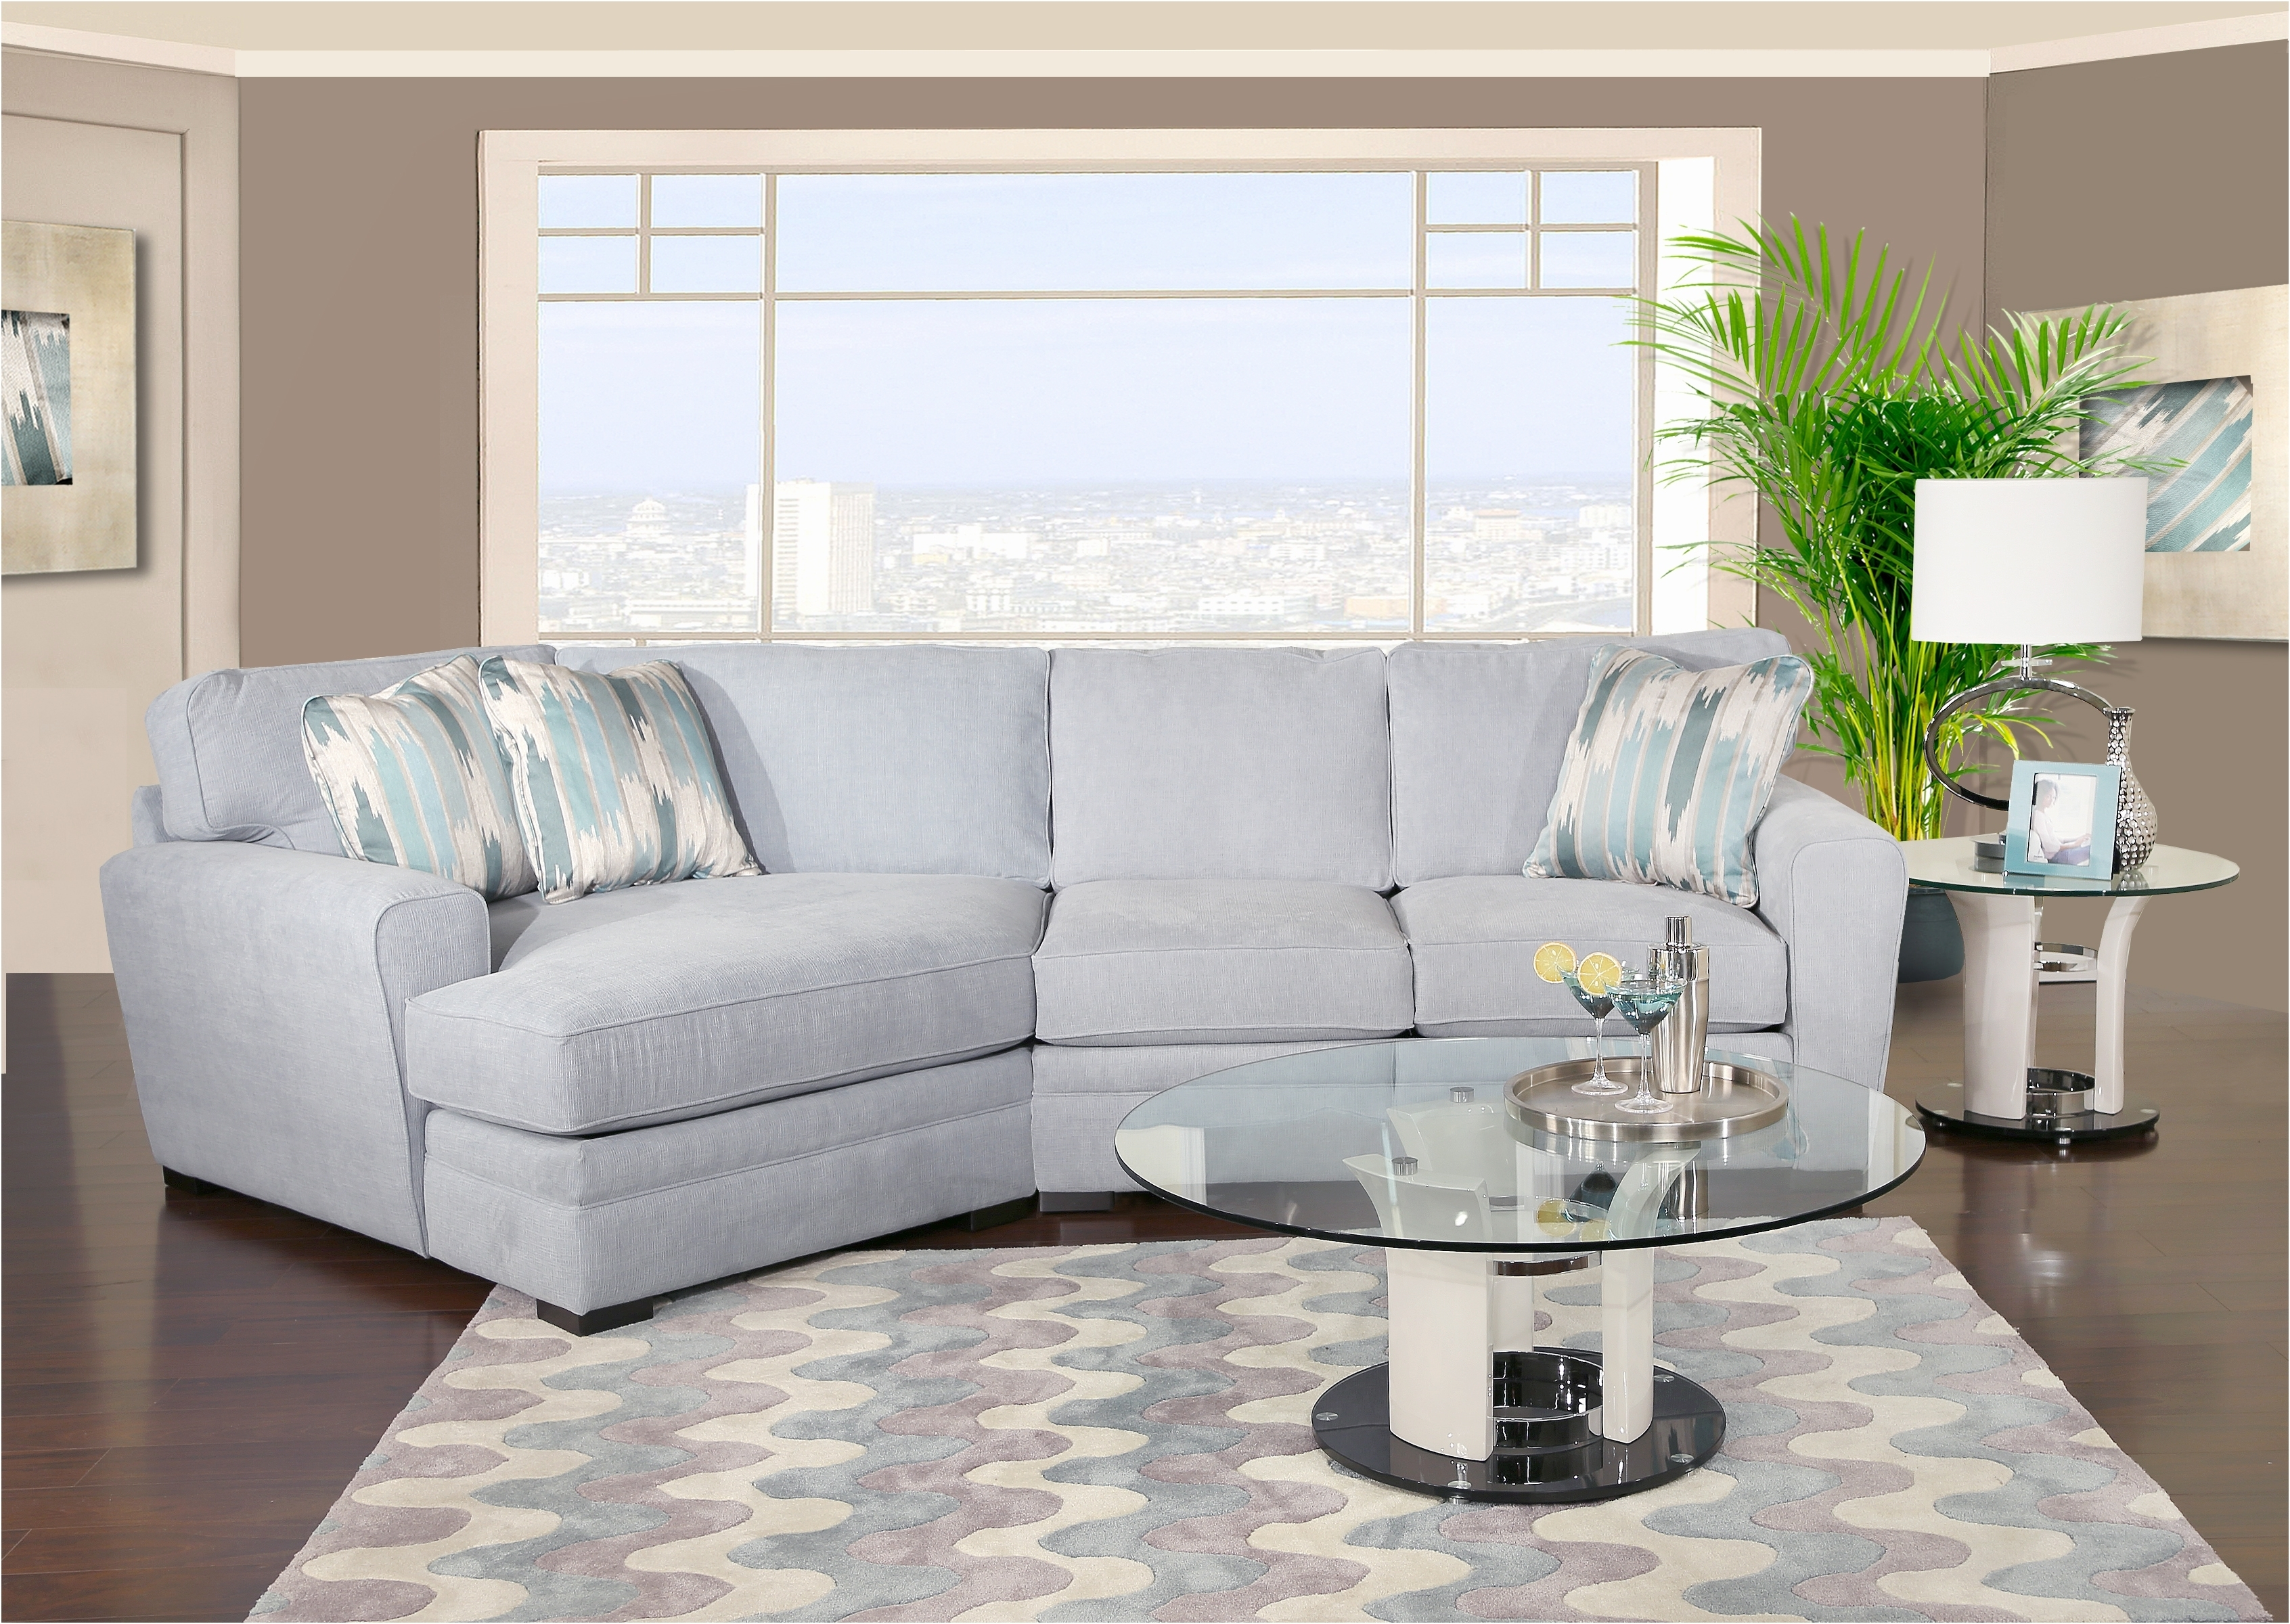 Sectional Sofa With Cuddler Chaise | Home Design Ideas And Inspiration In Kanes Sectional Sofas (View 3 of 10)